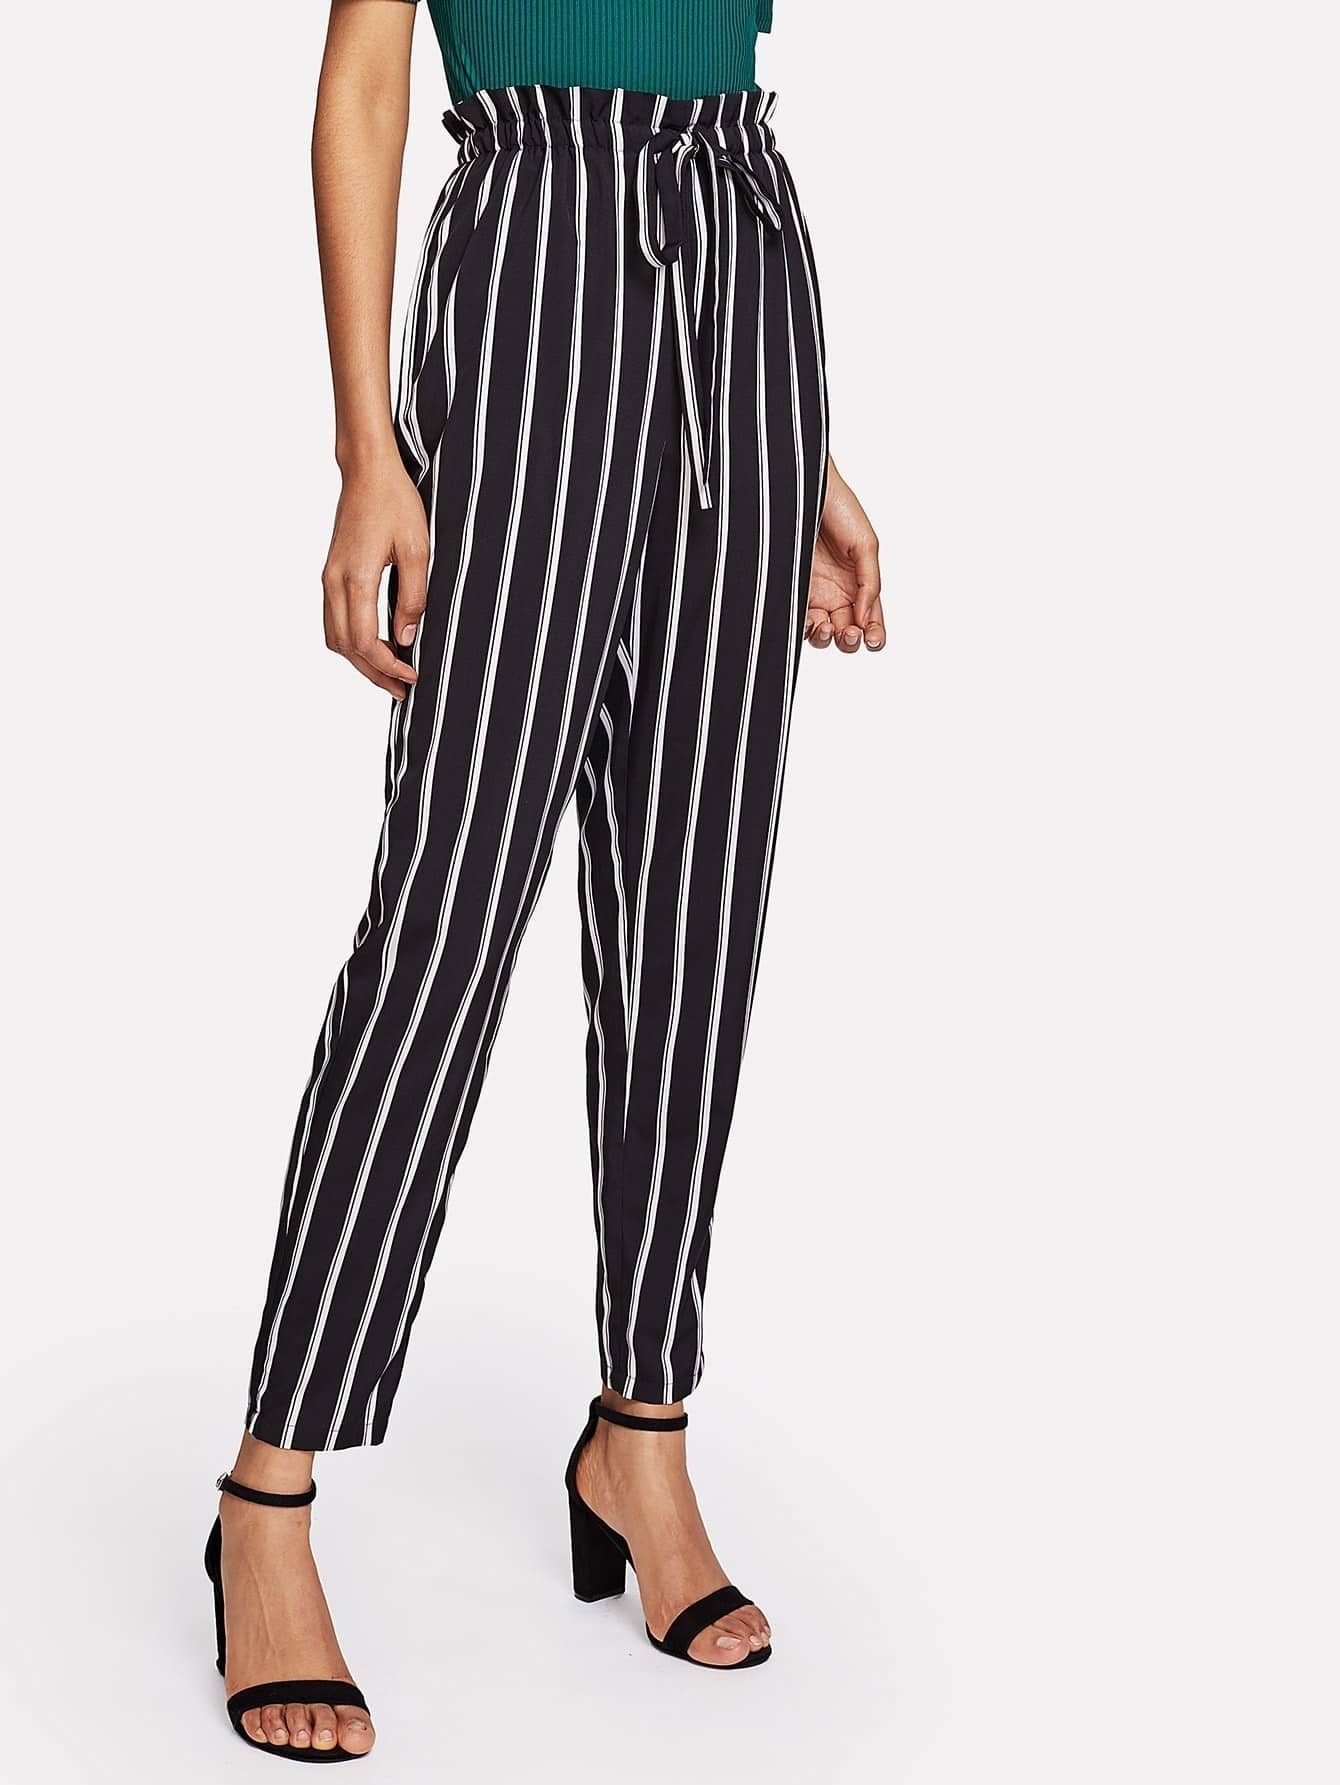 Vertical Striped Drawstring Pants vertical striped pants